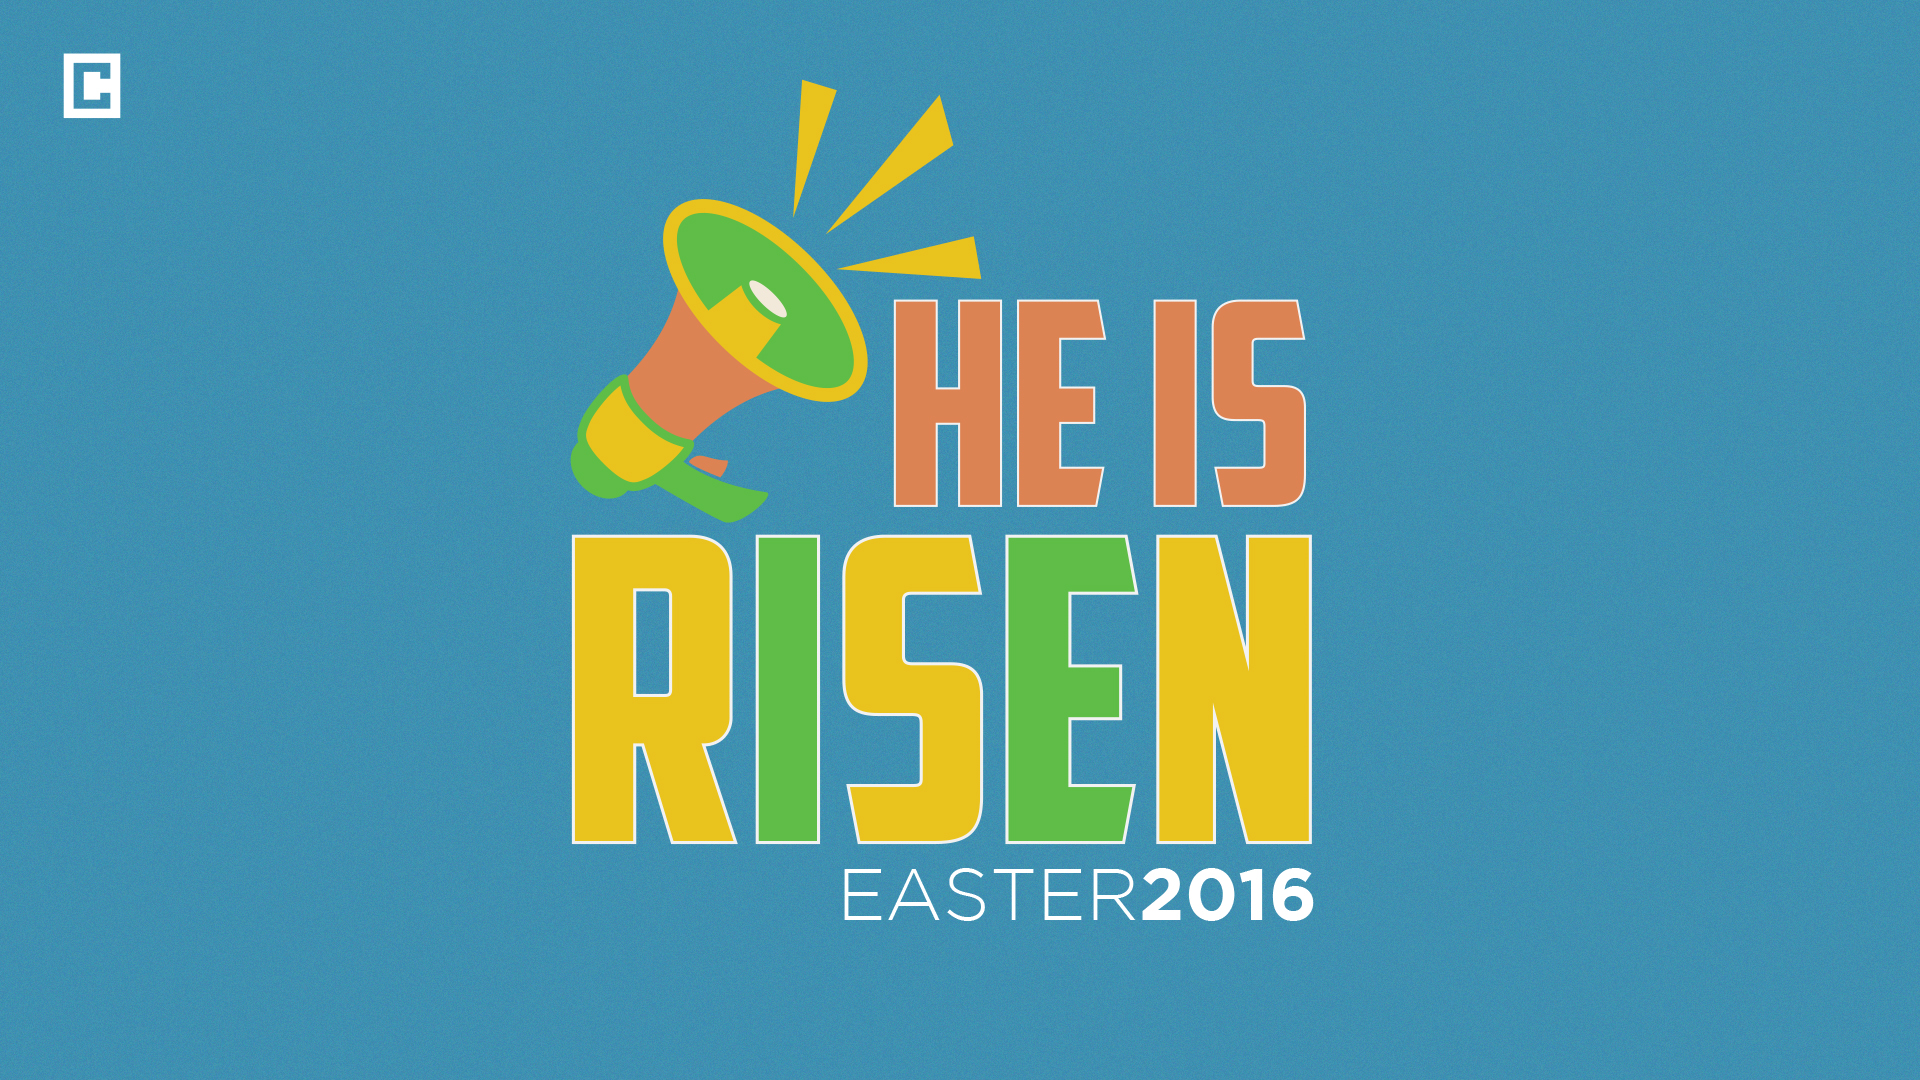 MARK YOUR CALENDAR FOR EASTER WEEKEND!          GOOD FRIDAY service: March 25 l 7:00 PM         EASTER SUNDAY services: March 27 - 8:30 AM, 10:00 AM & 11:30 AM